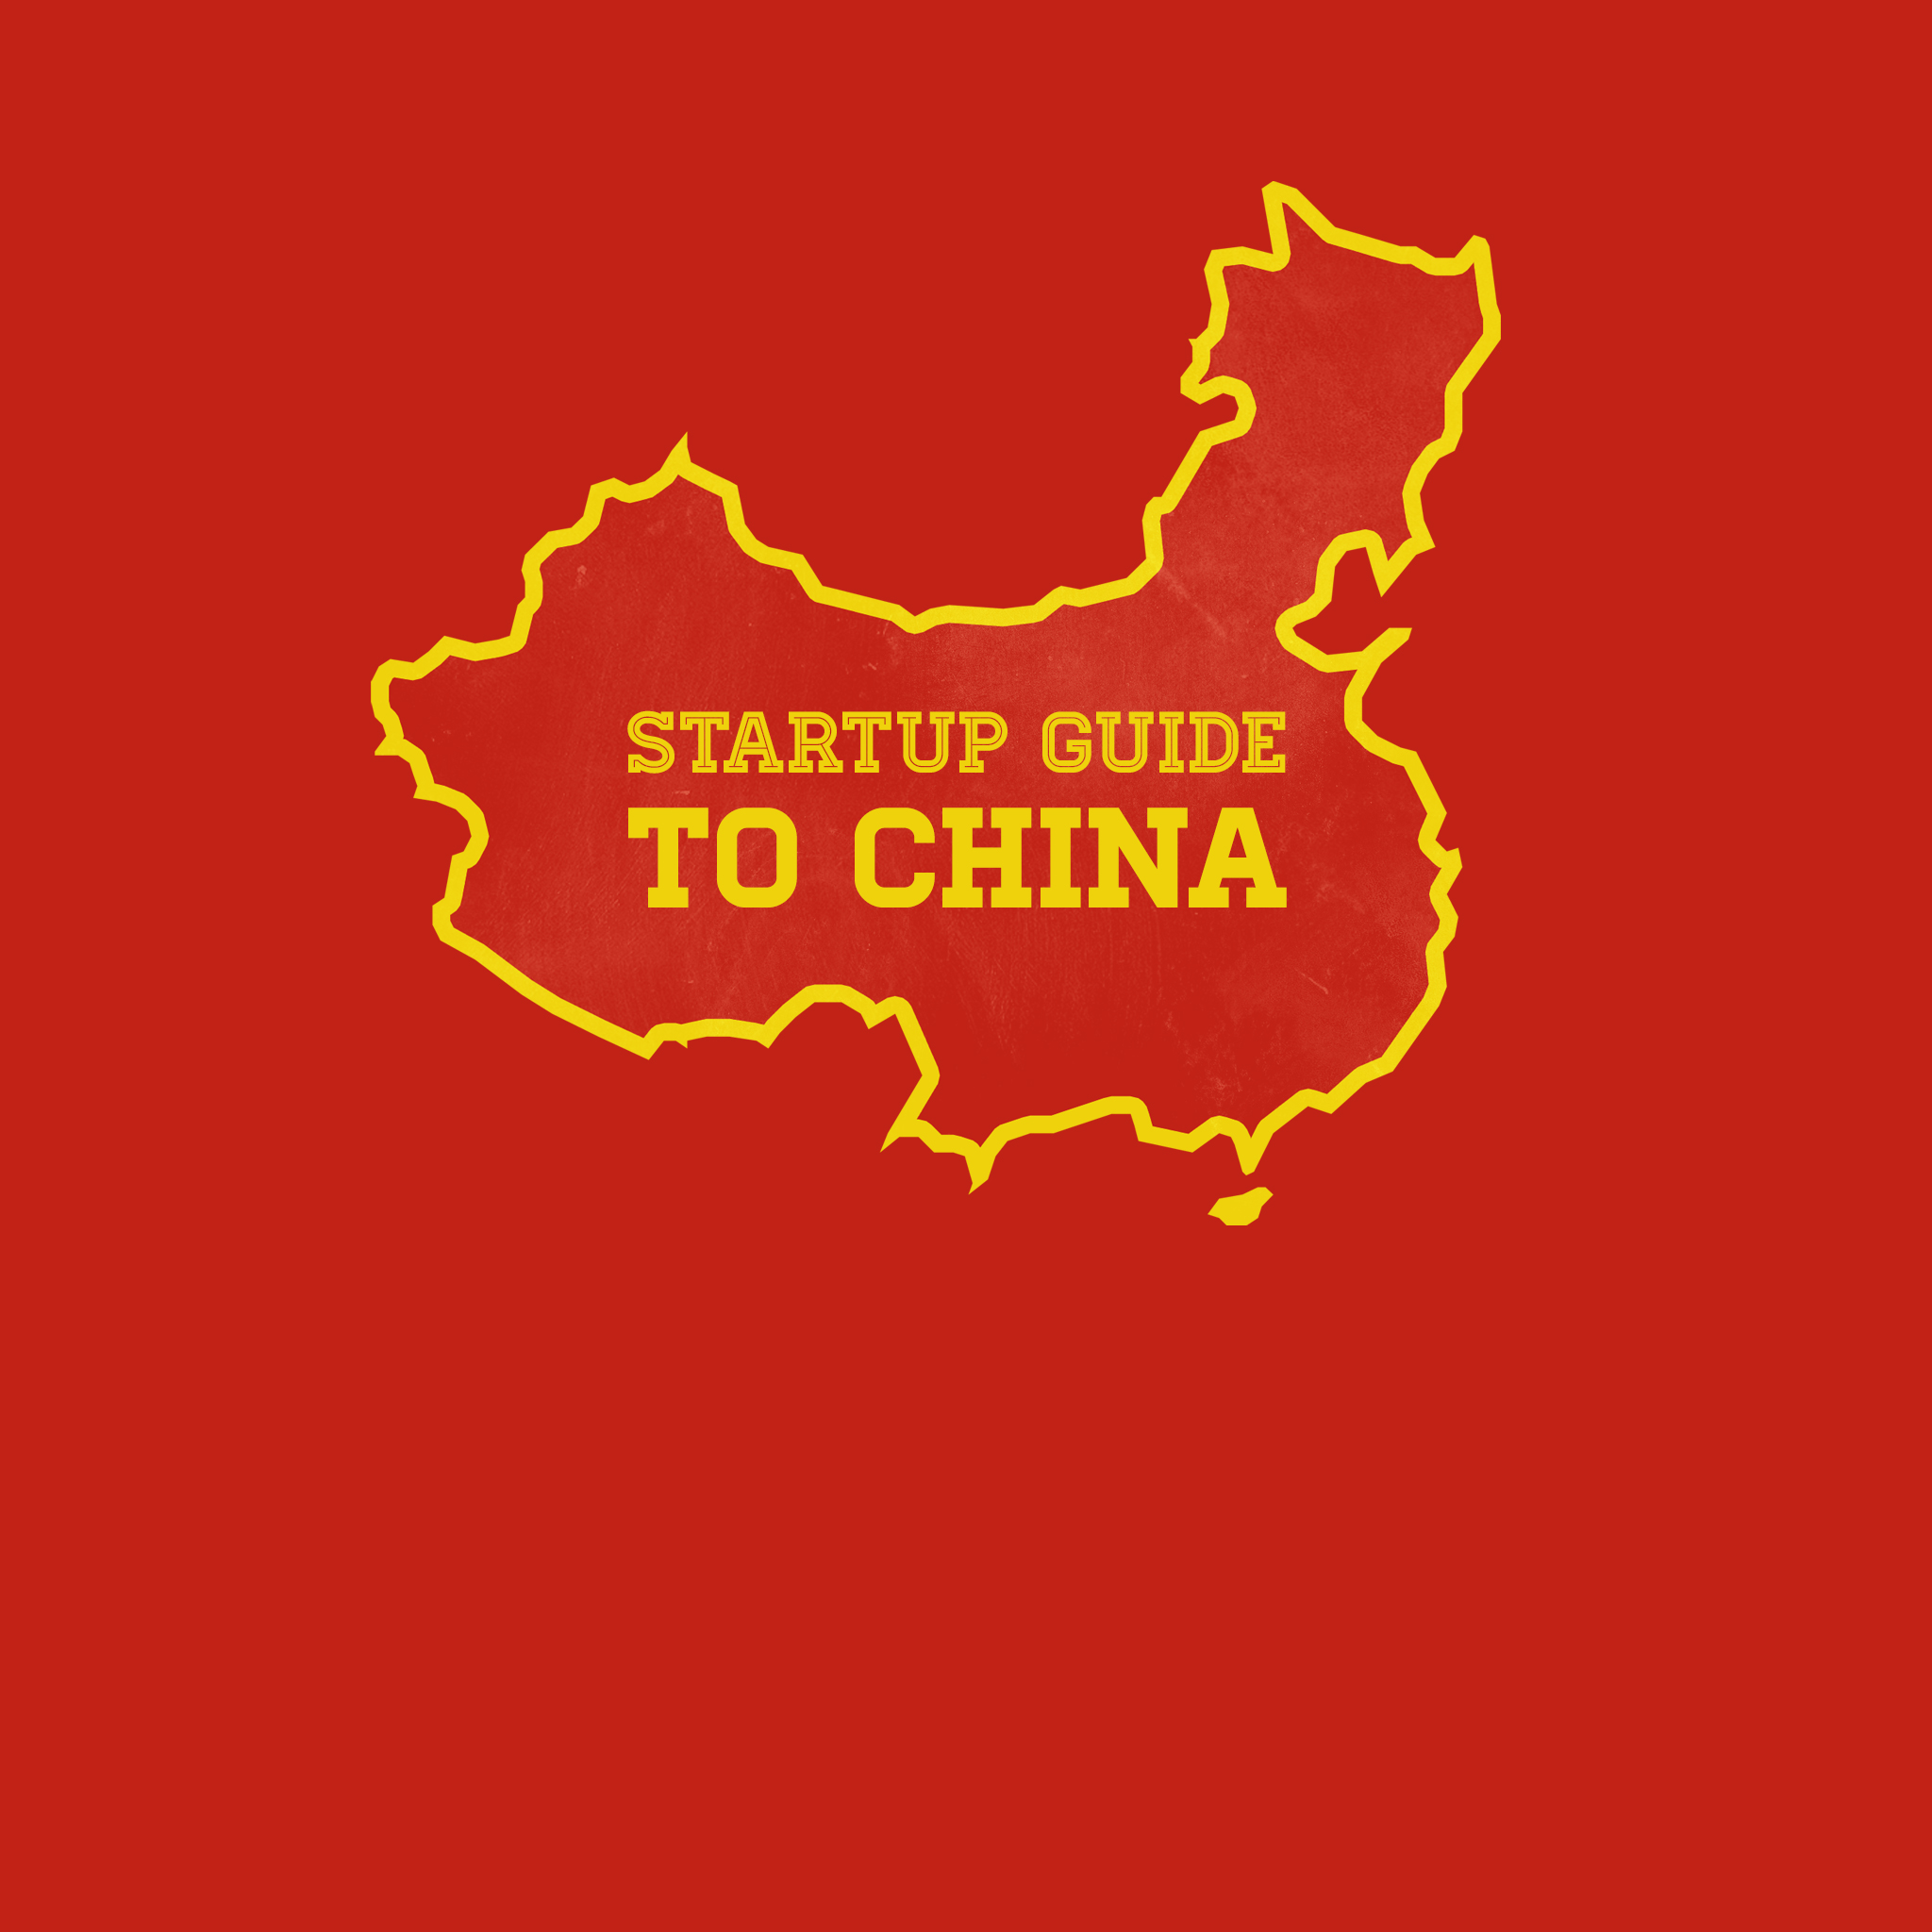 Issue v0.7: Startup guide to China